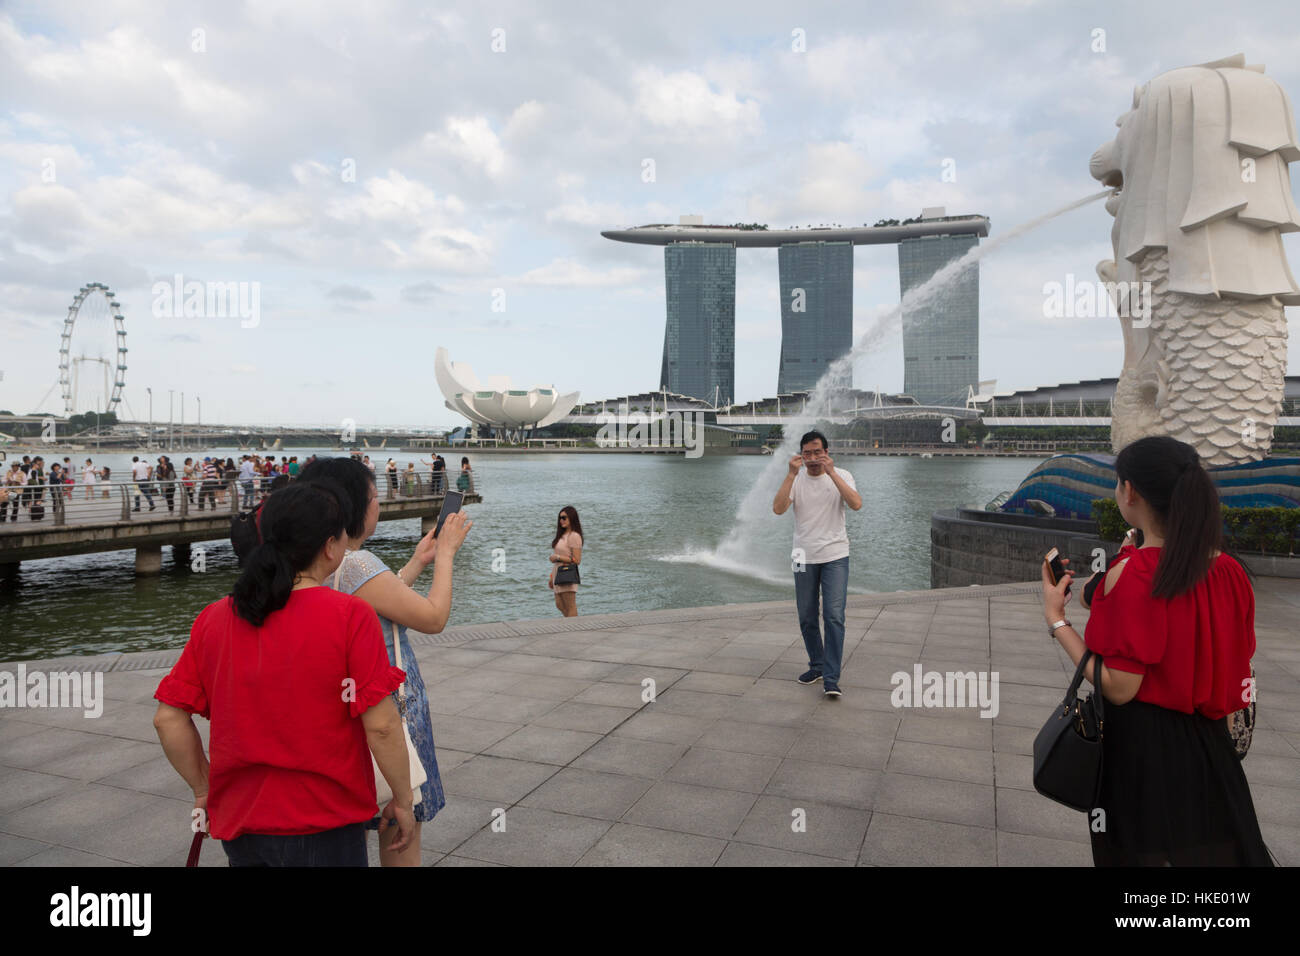 SINGAPORE, SINGAPORE - FEBRUARY 22 2016: Tourists take photo in front of the Marina Sands building and the Merlion - Stock Image